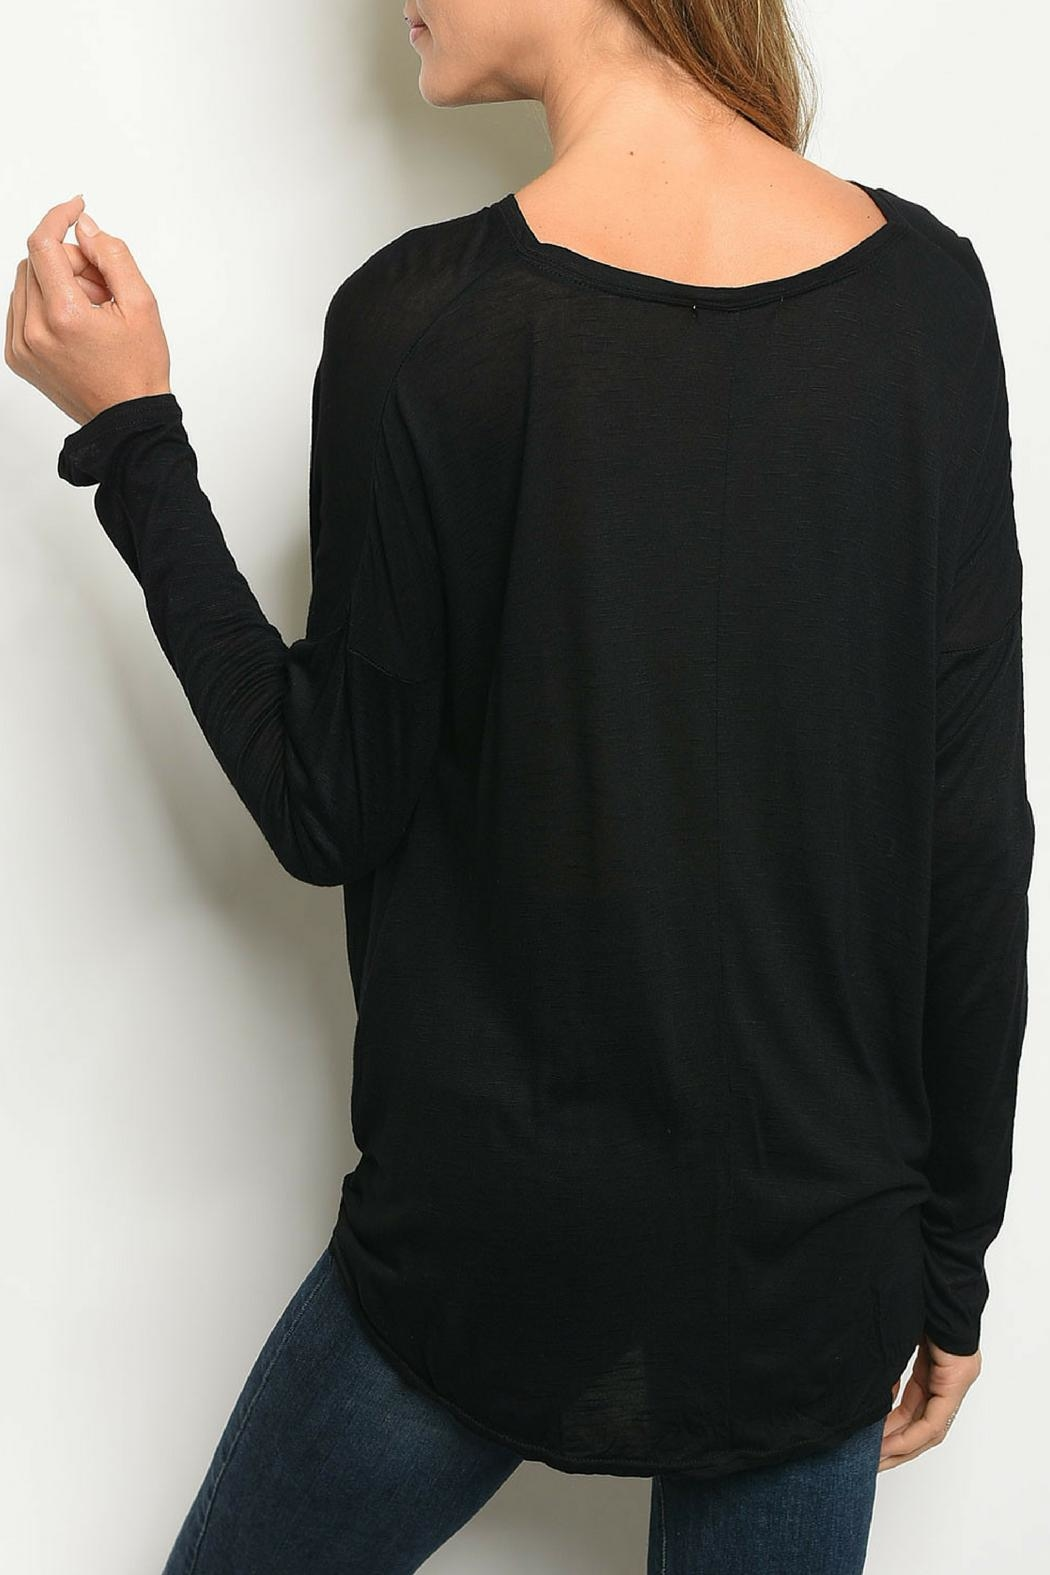 LoveRiche Black Knotted Top - Front Full Image